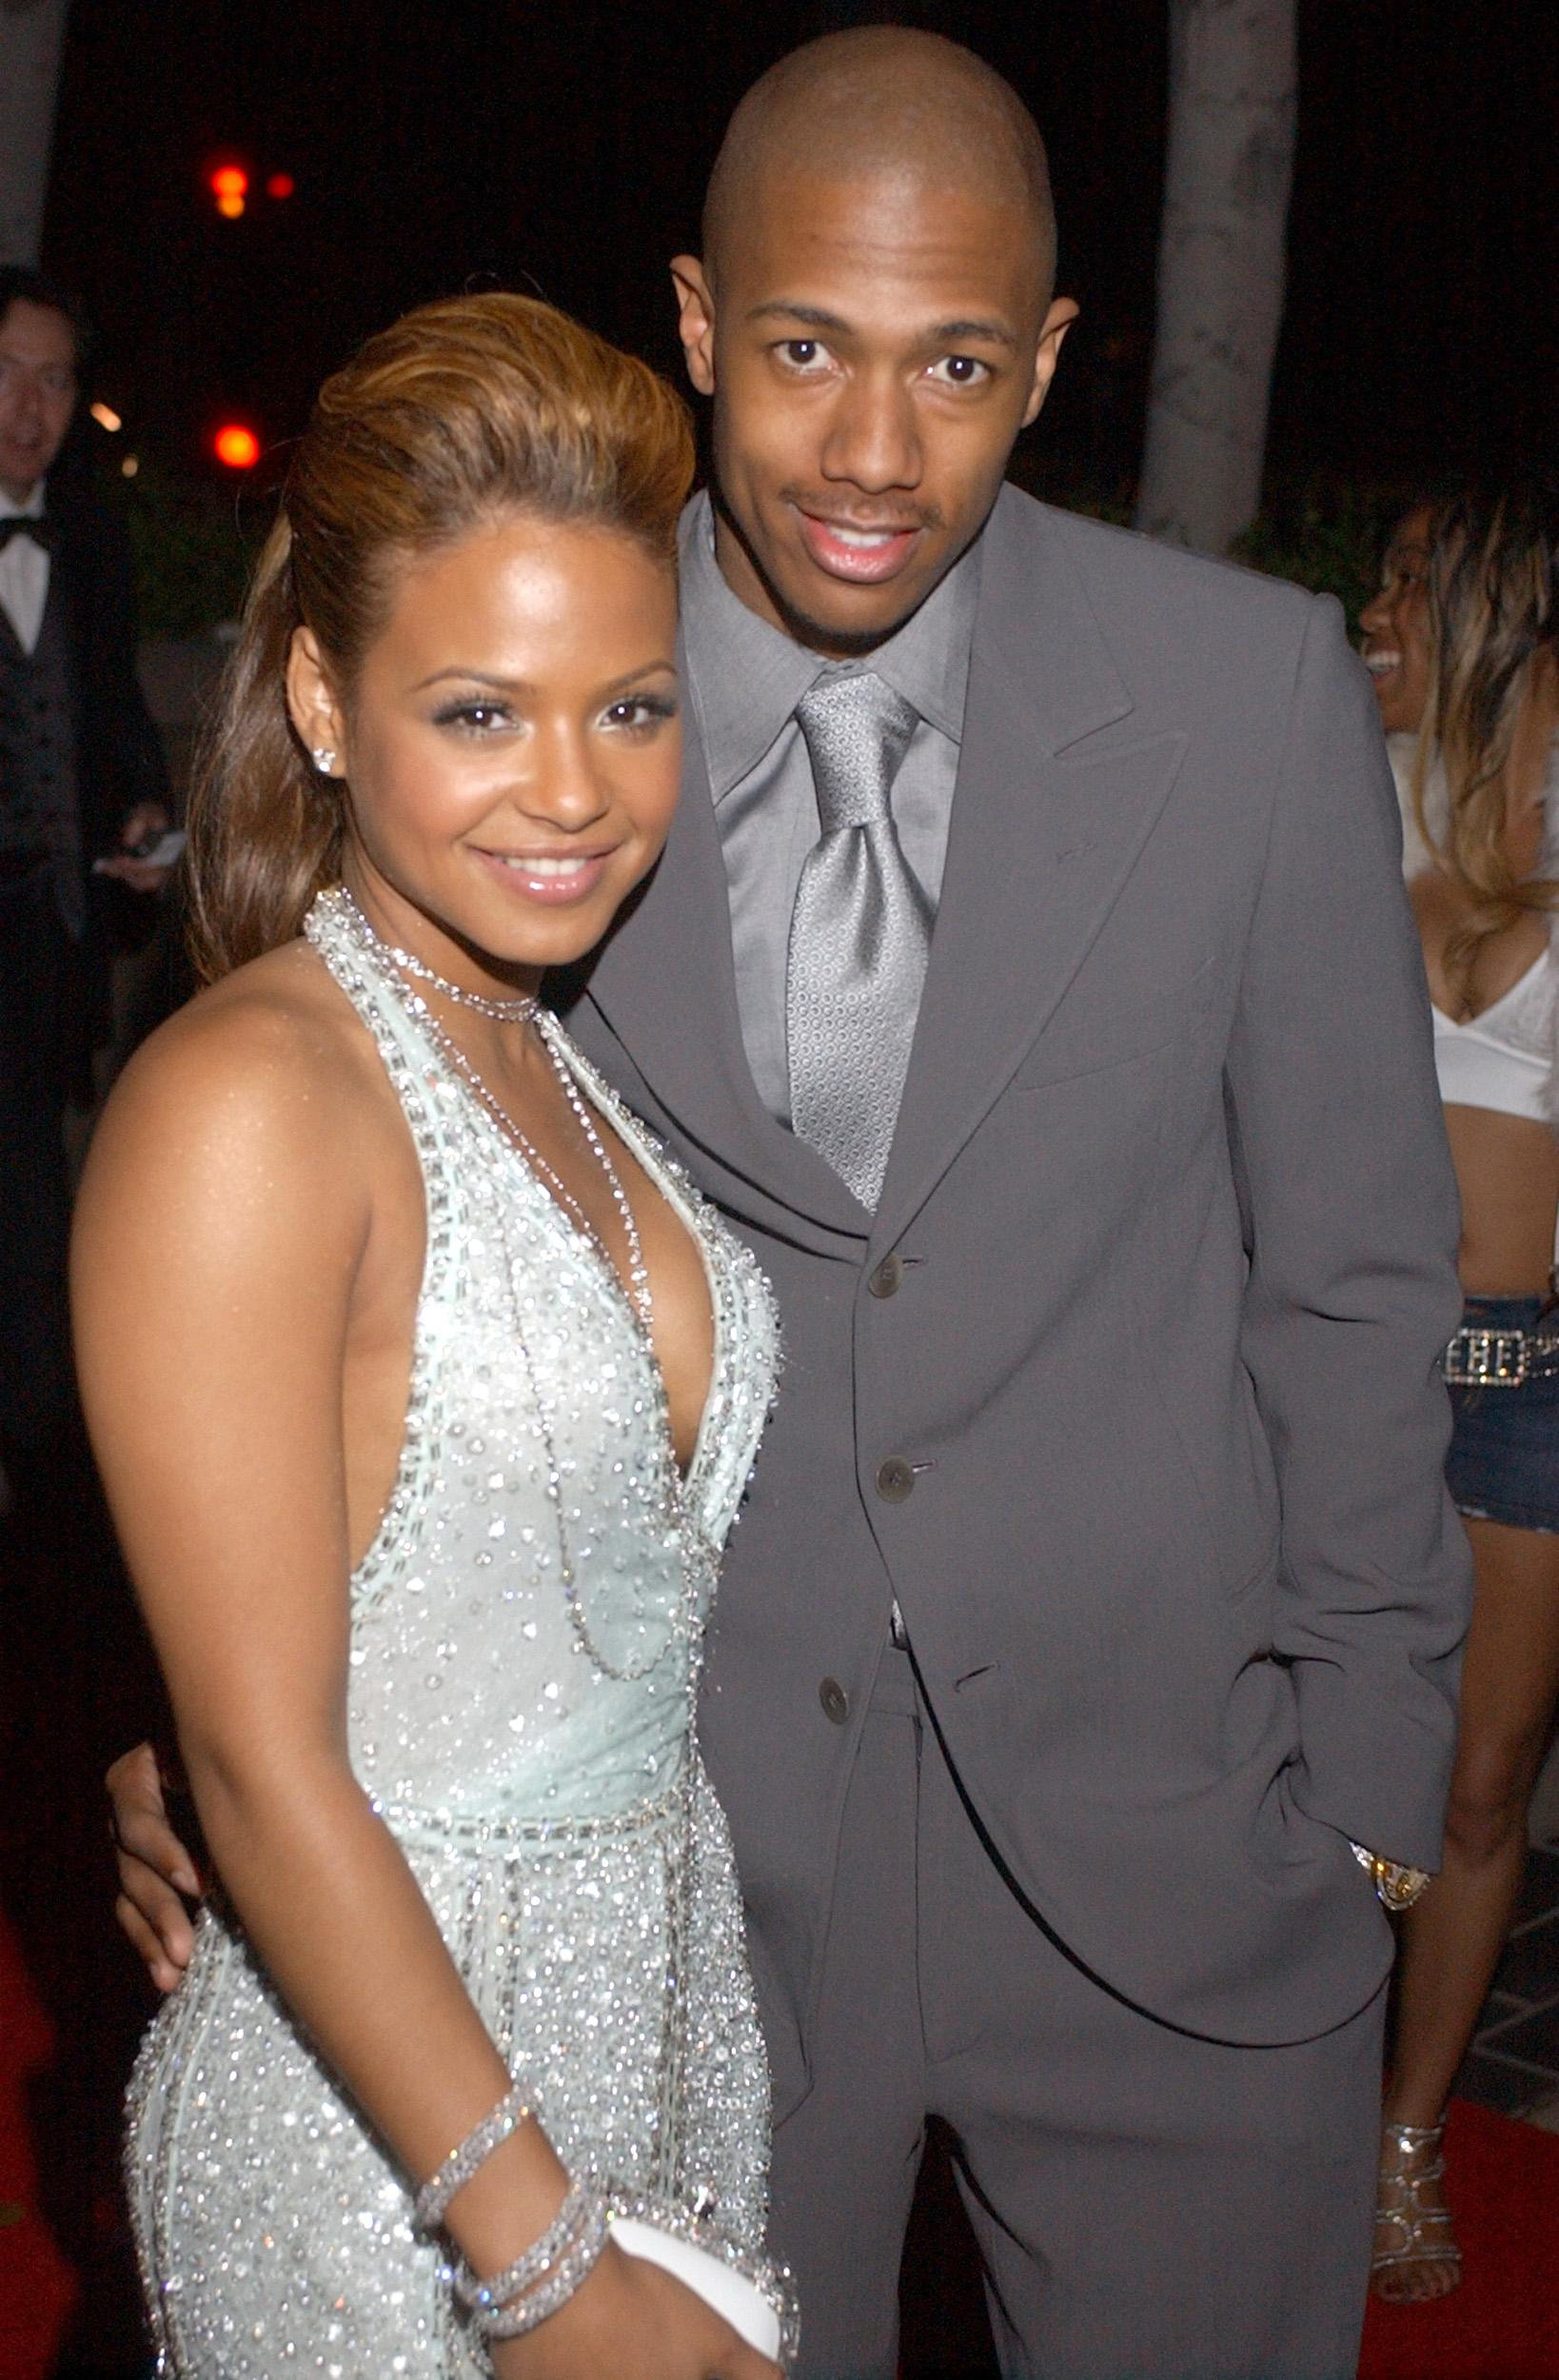 christina milian and nick cannon dating stories